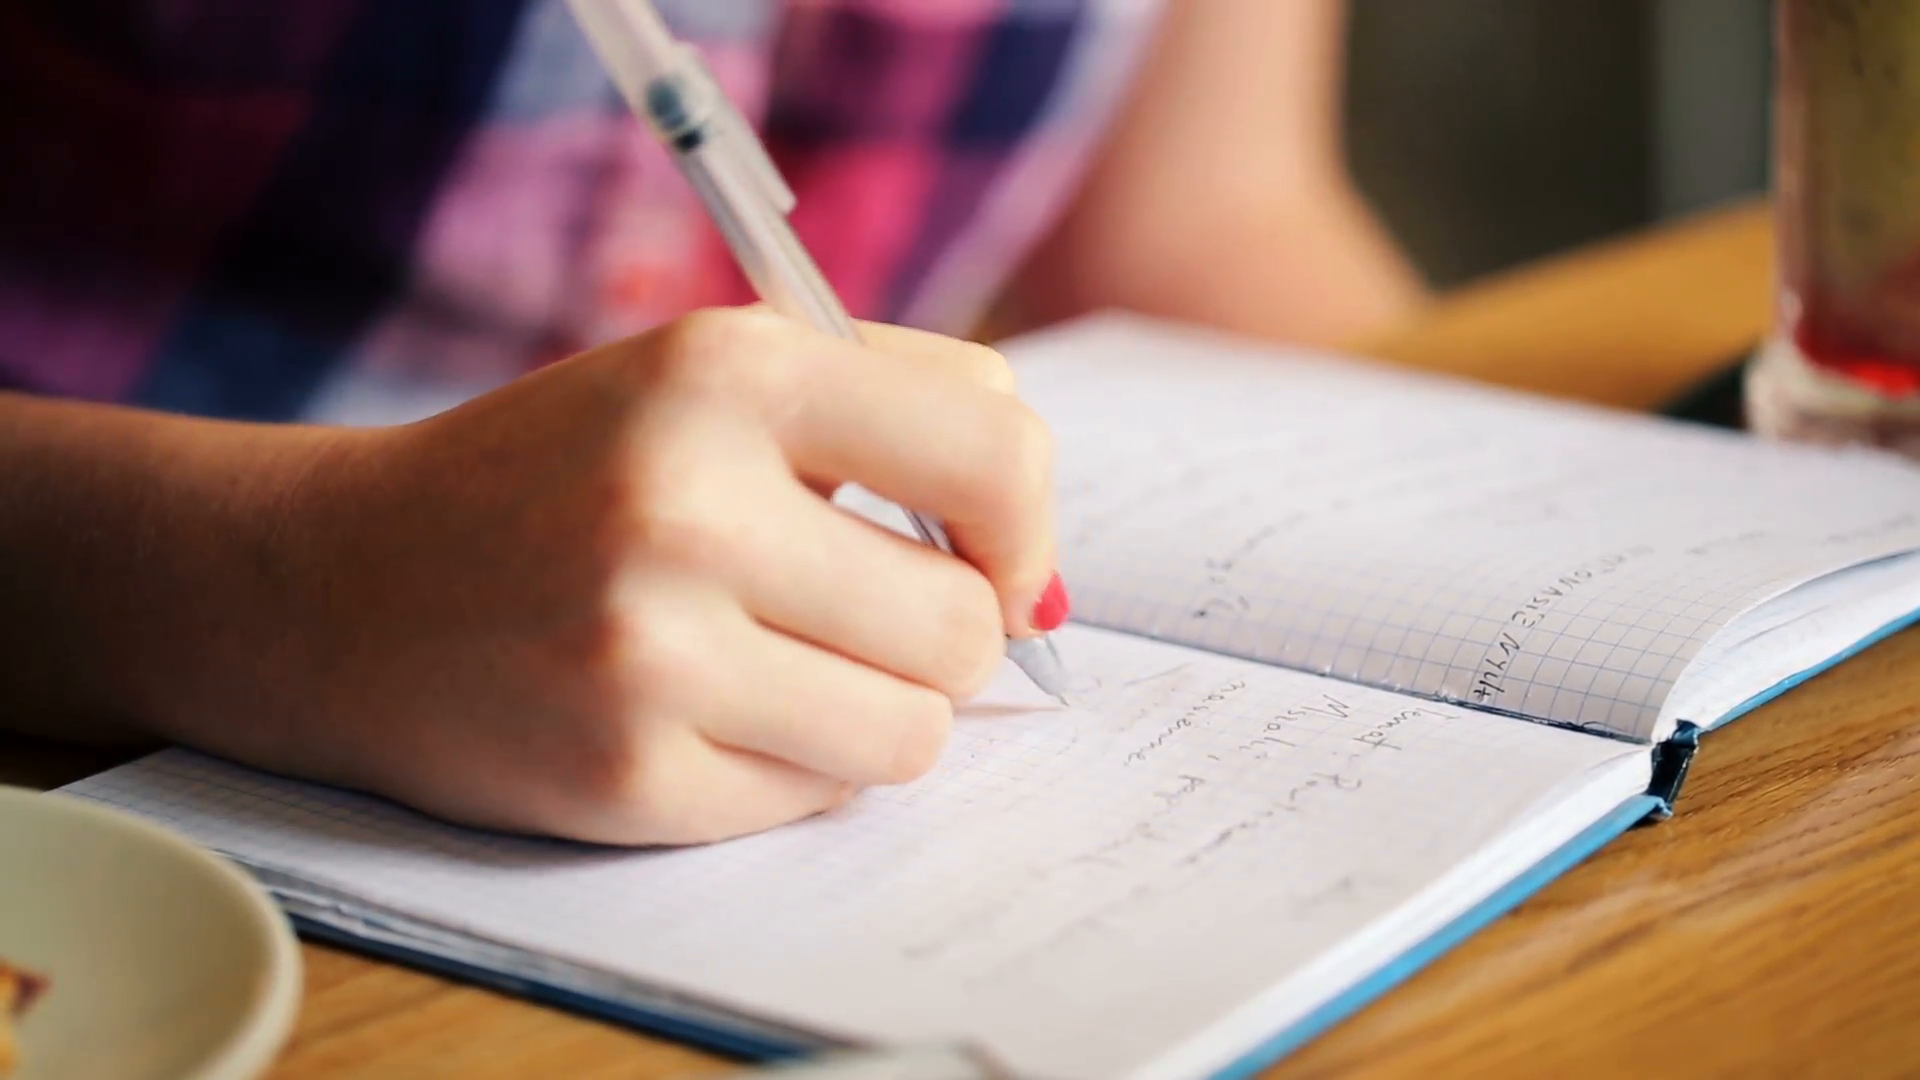 teenage-girl-hands-writing-in-notebook-doing-homework_vyfyytly__F0000.png